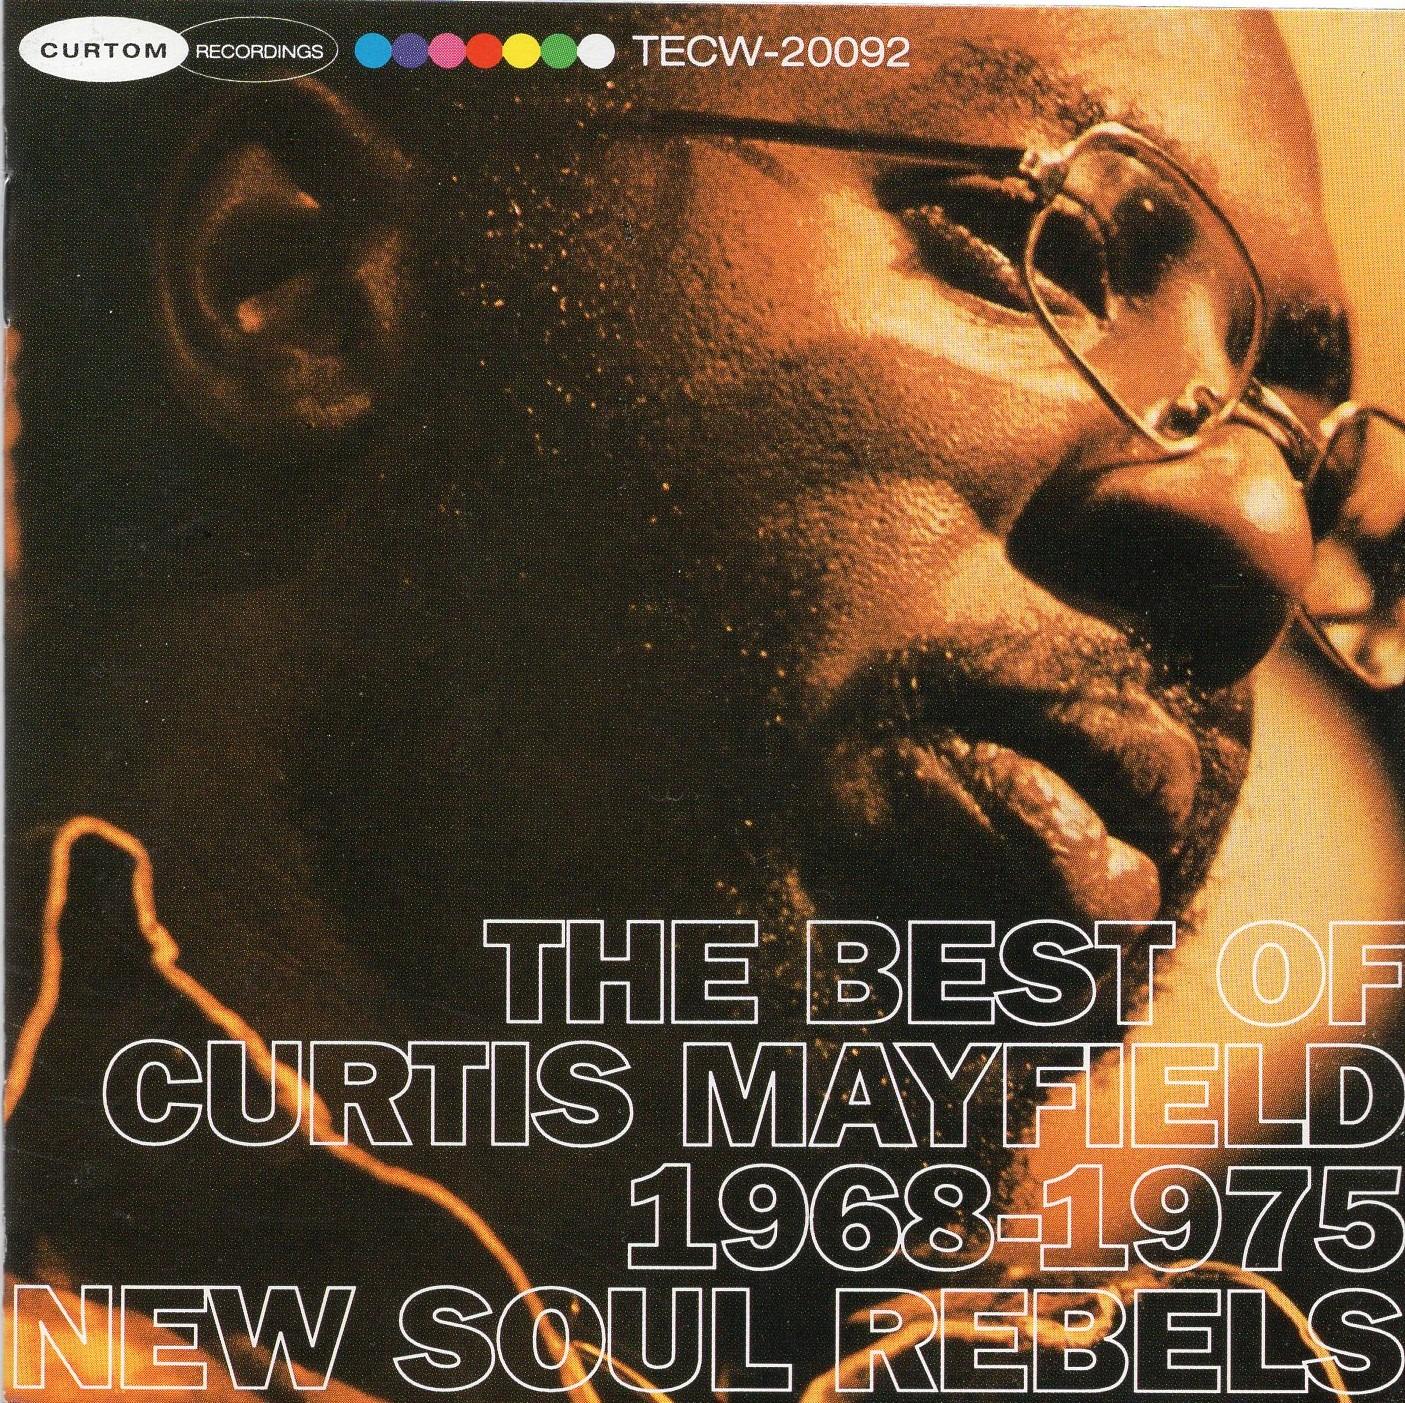 """The Best of Curtis Mayfield 1968-1975 New Soul Rebels"" Curtis Mayfield"